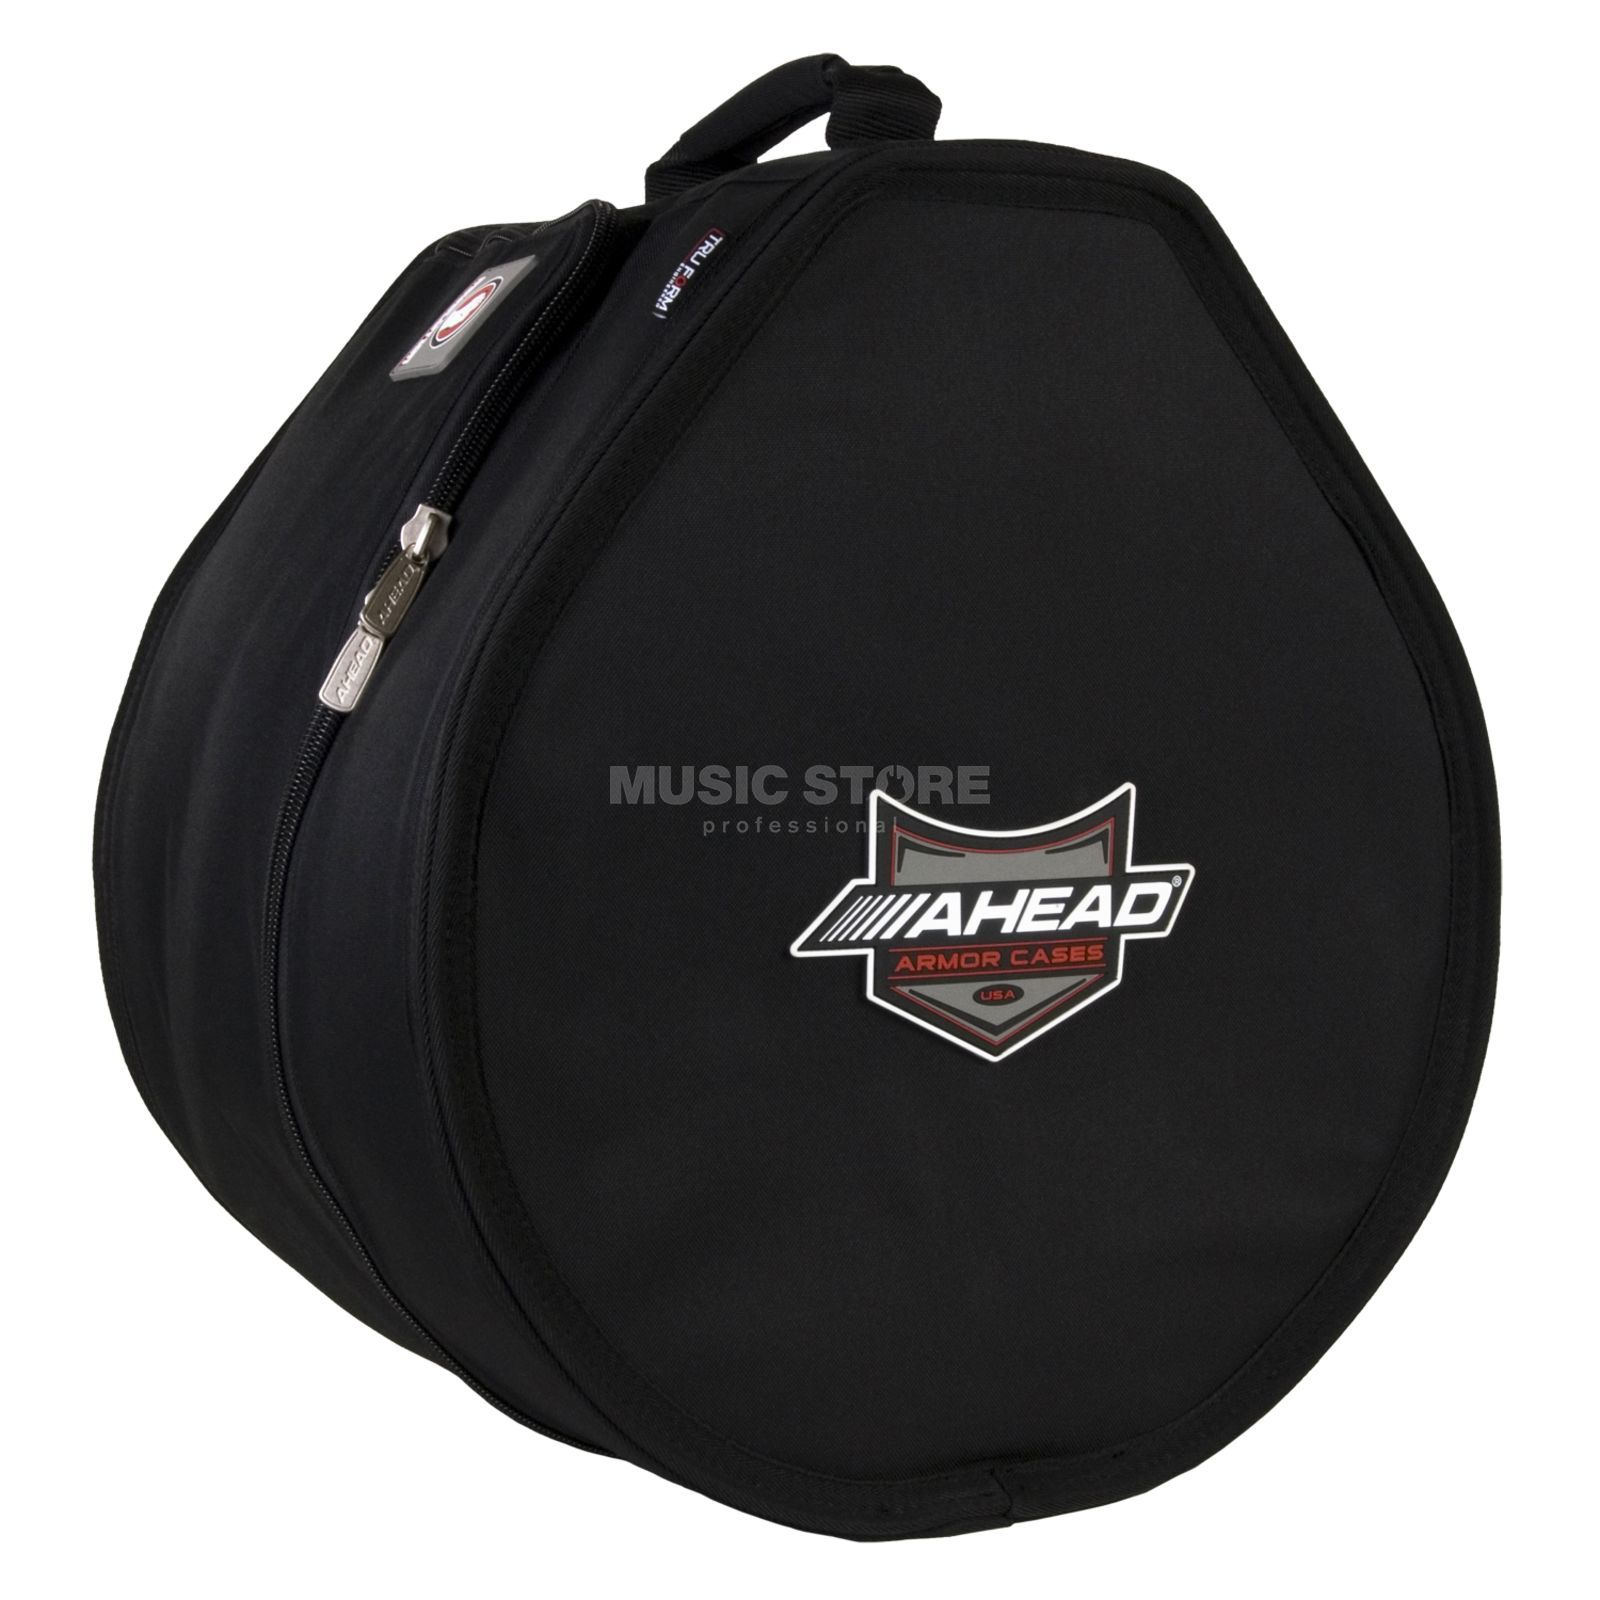 "Ahead Armor Cases Tom Bag 16""x14""  Produktbild"